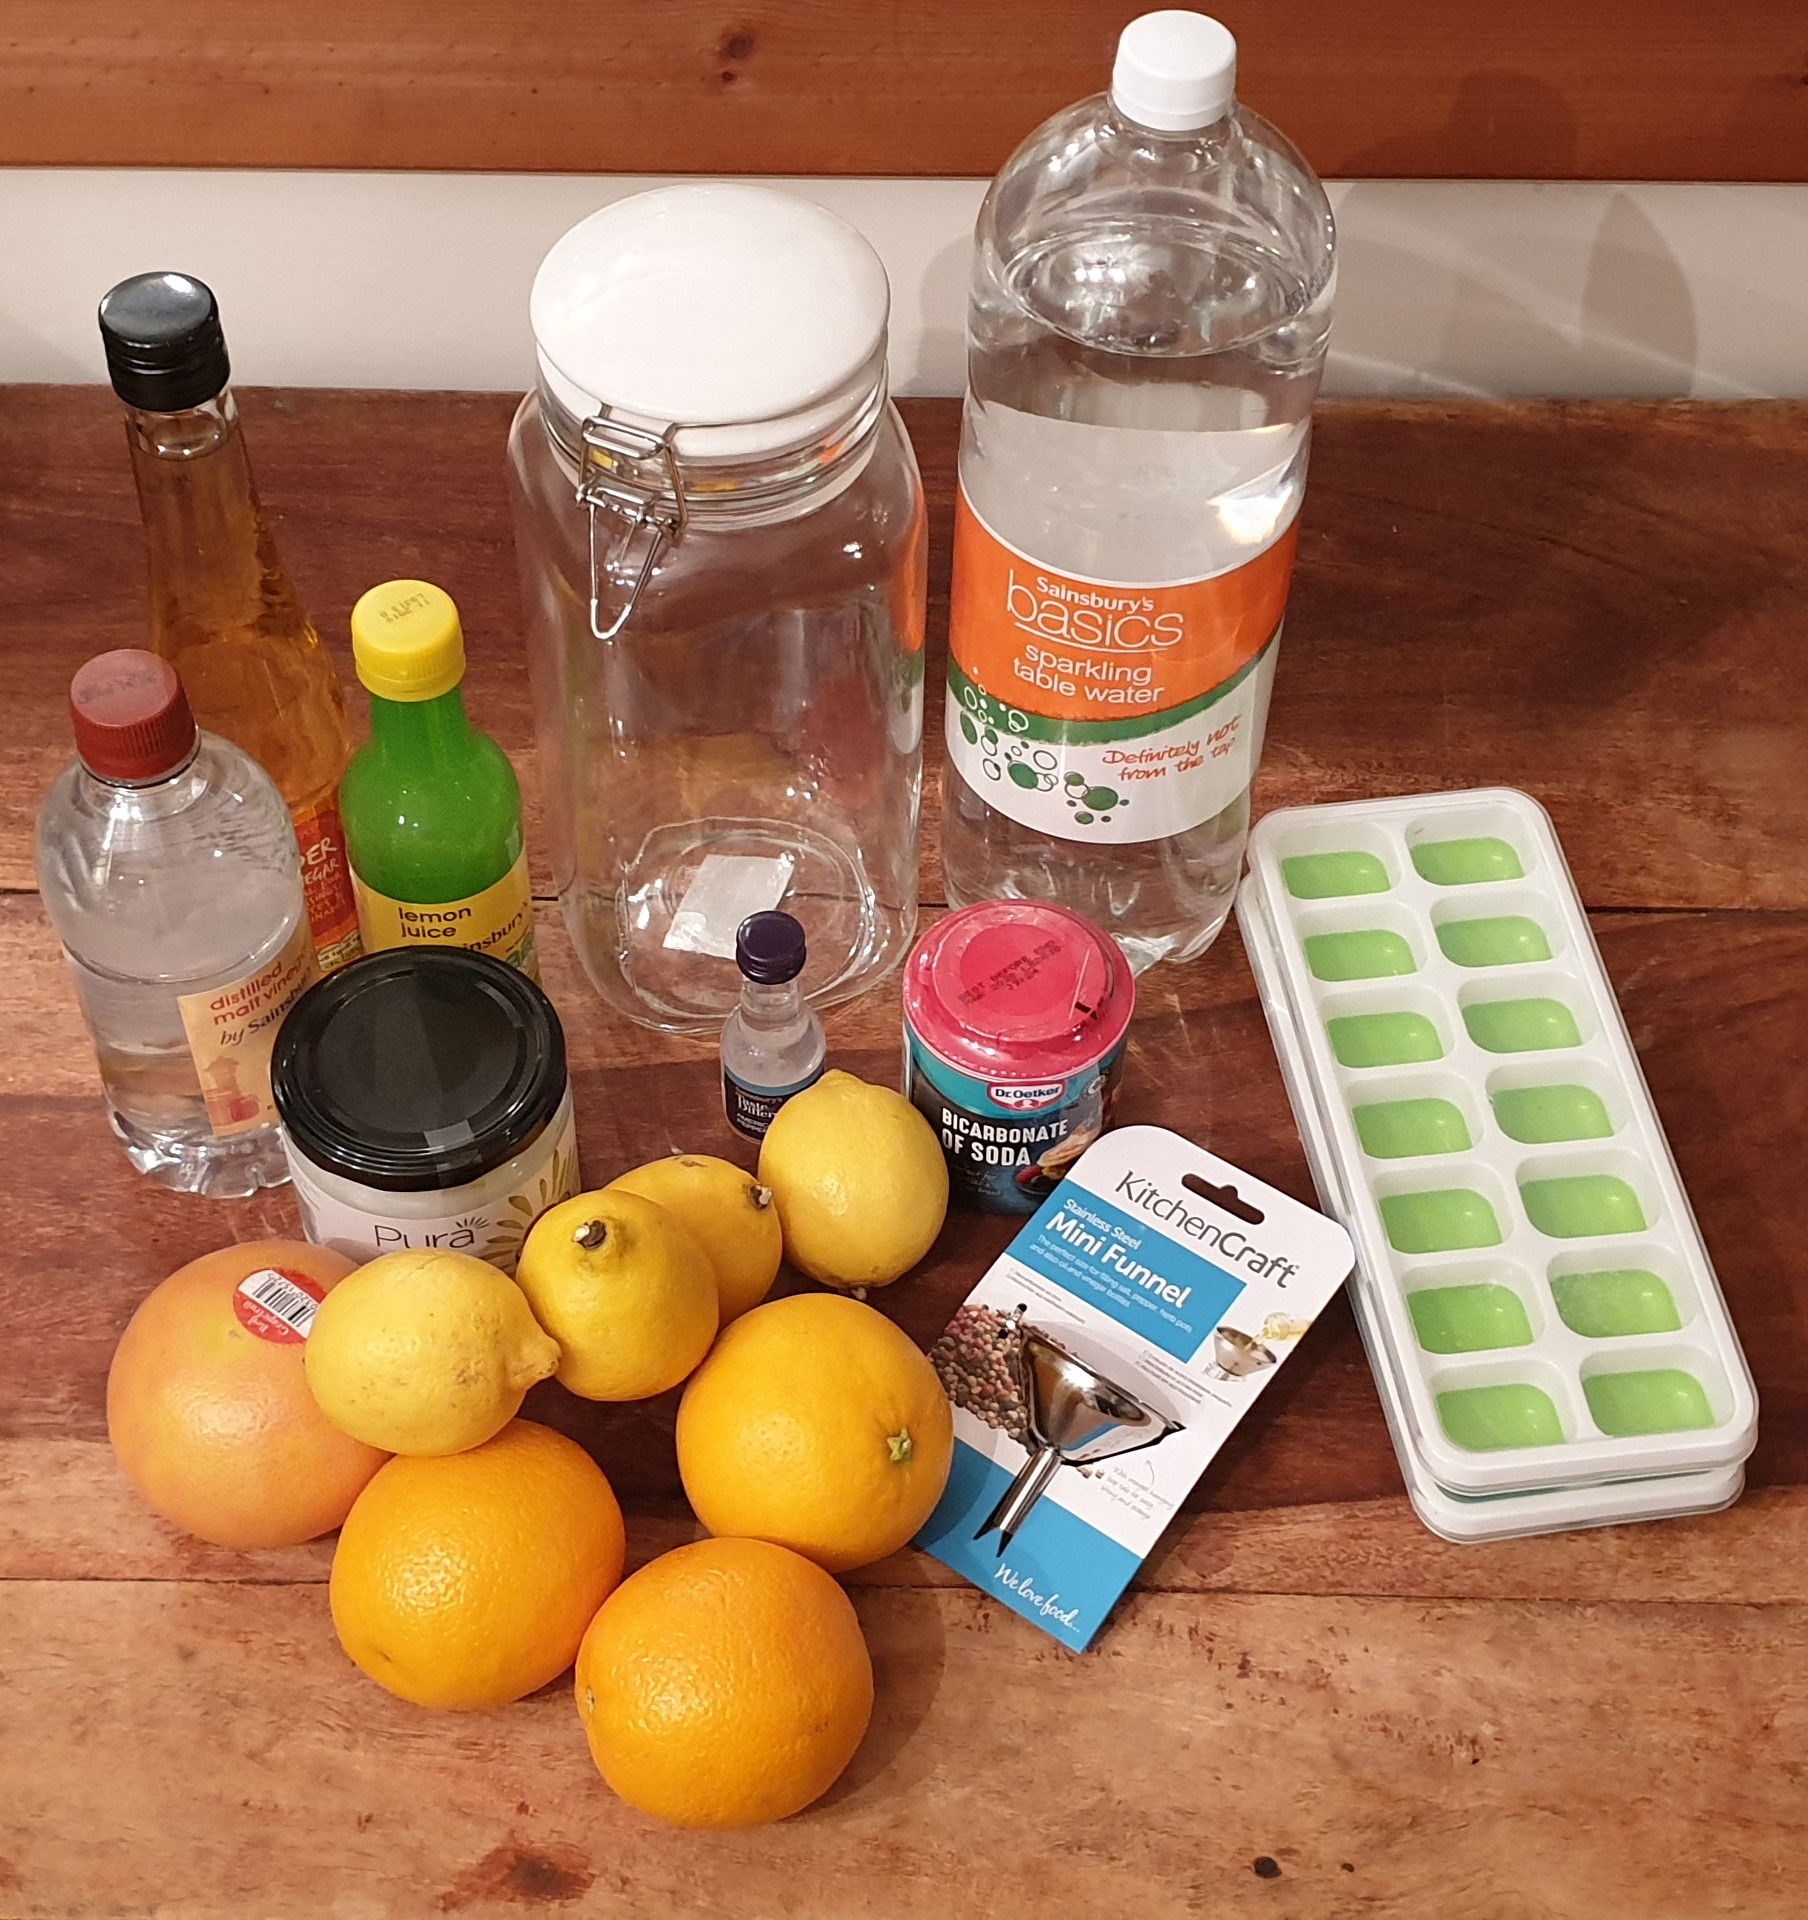 Picture of ingredients for making cleaning products